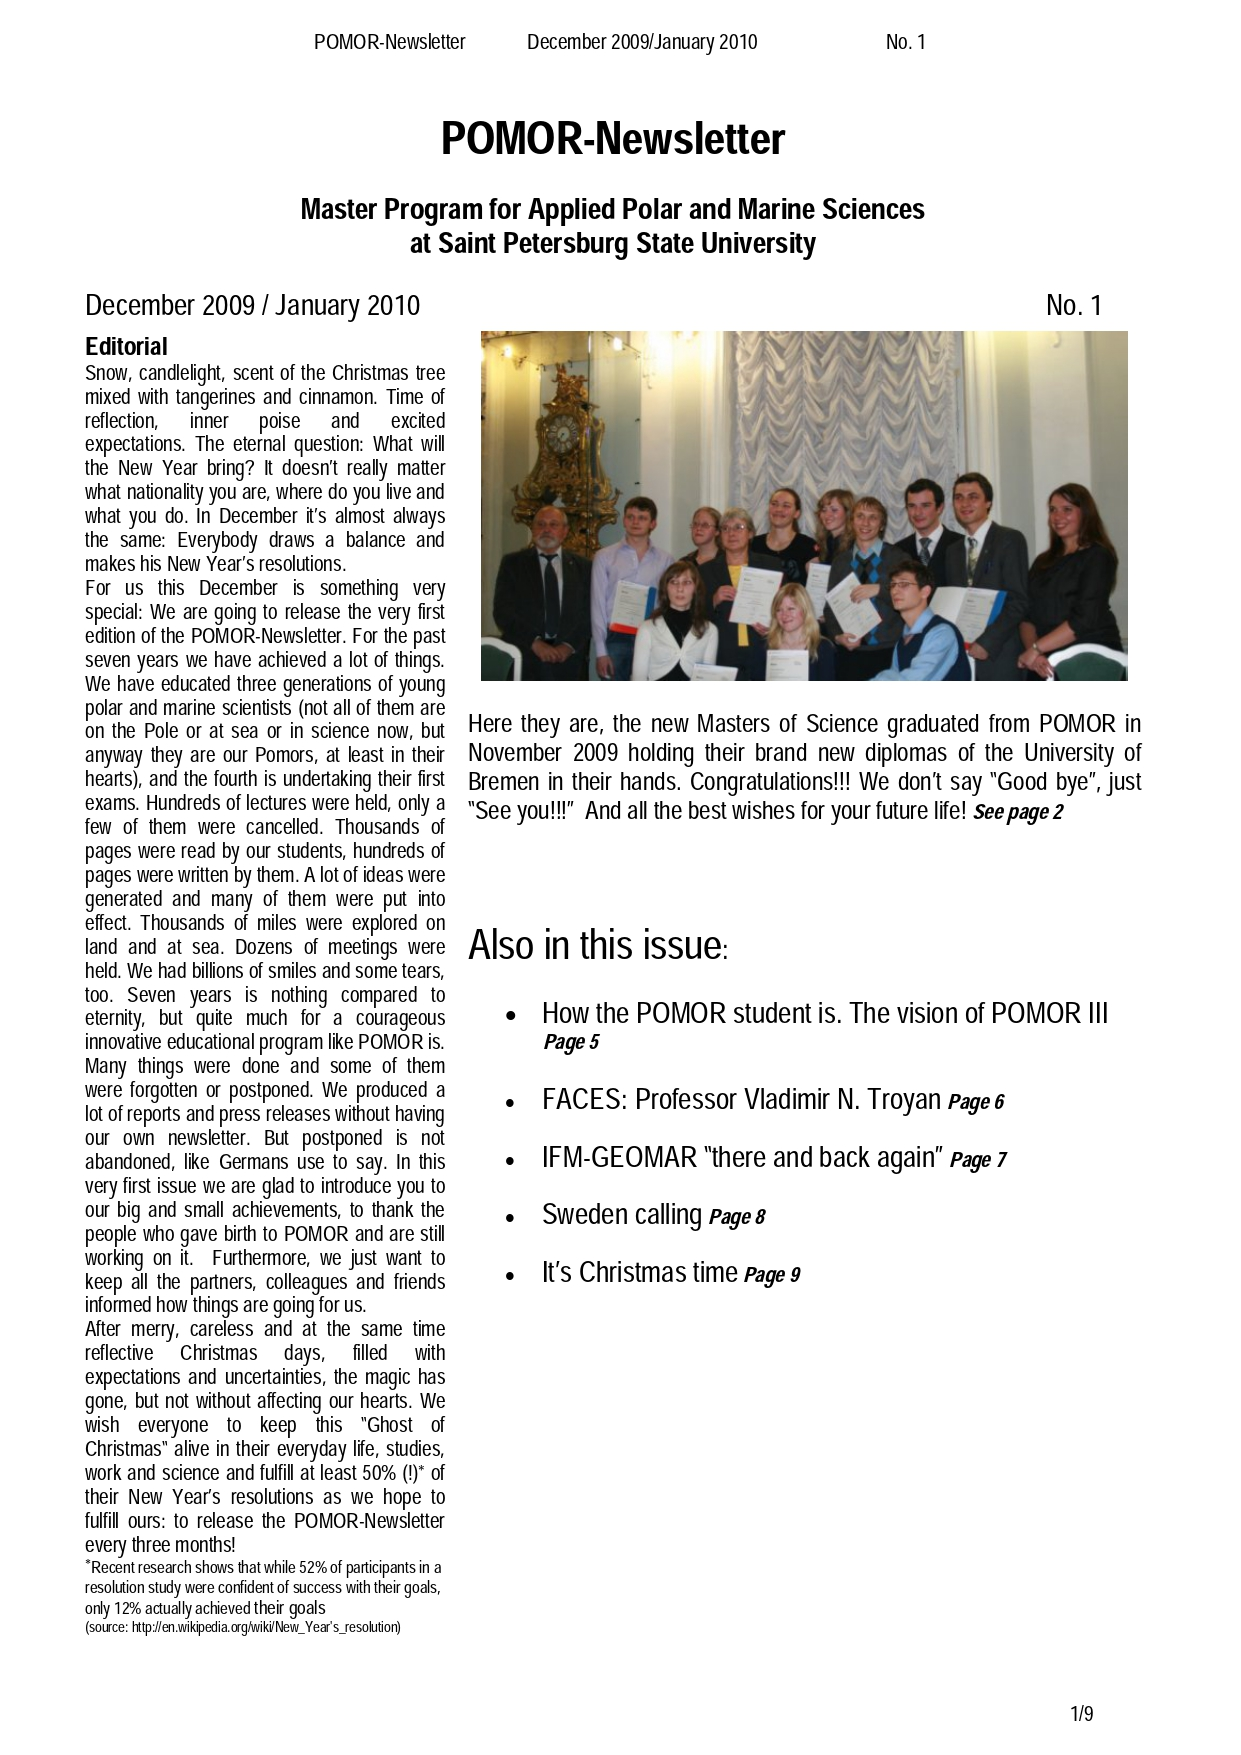 POMOR Newsletter 1 2 page 0001